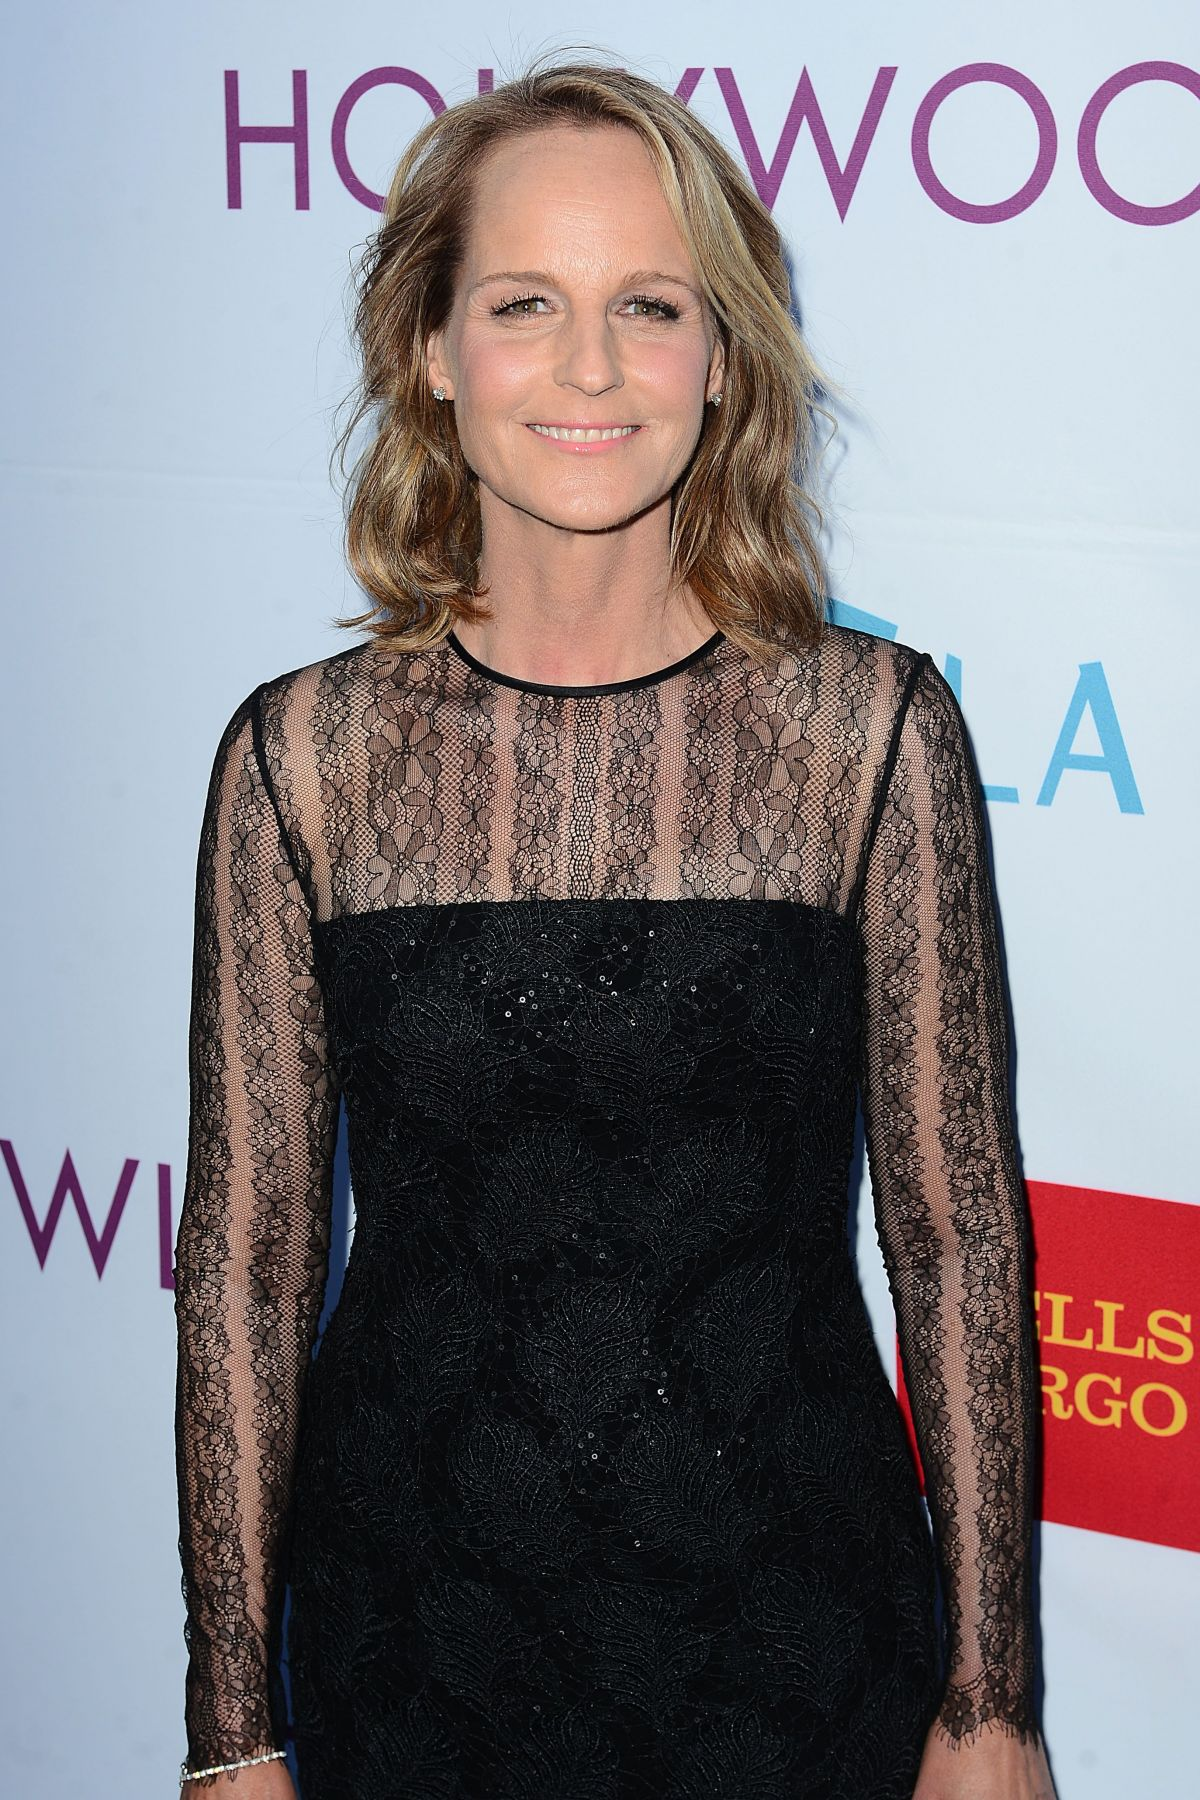 HELEN HUNT at 2014 Hollywood Bowl Opening Might and Hall of Fame Inductions